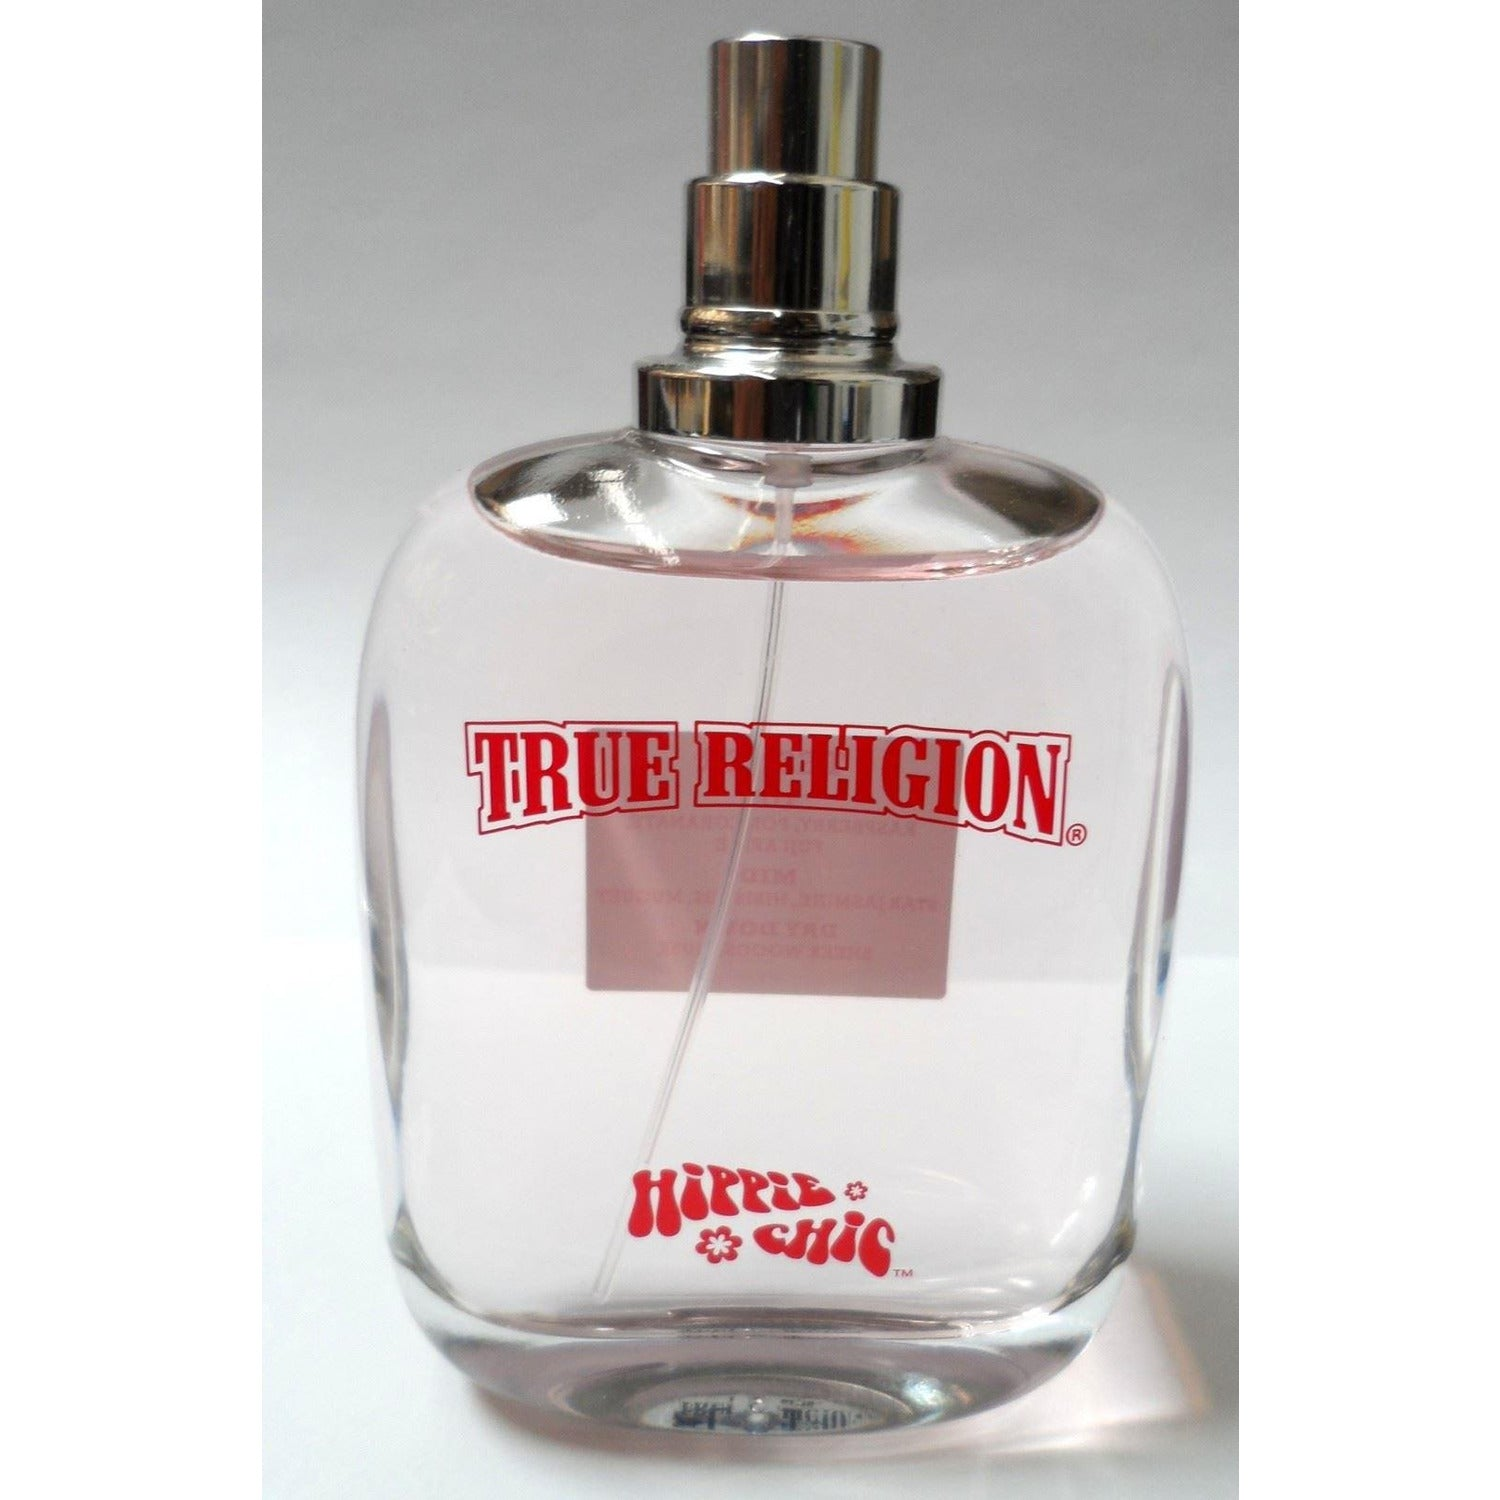 true-religion-hippie-chic-3-3-3-4-oz-women-edp-new-tester